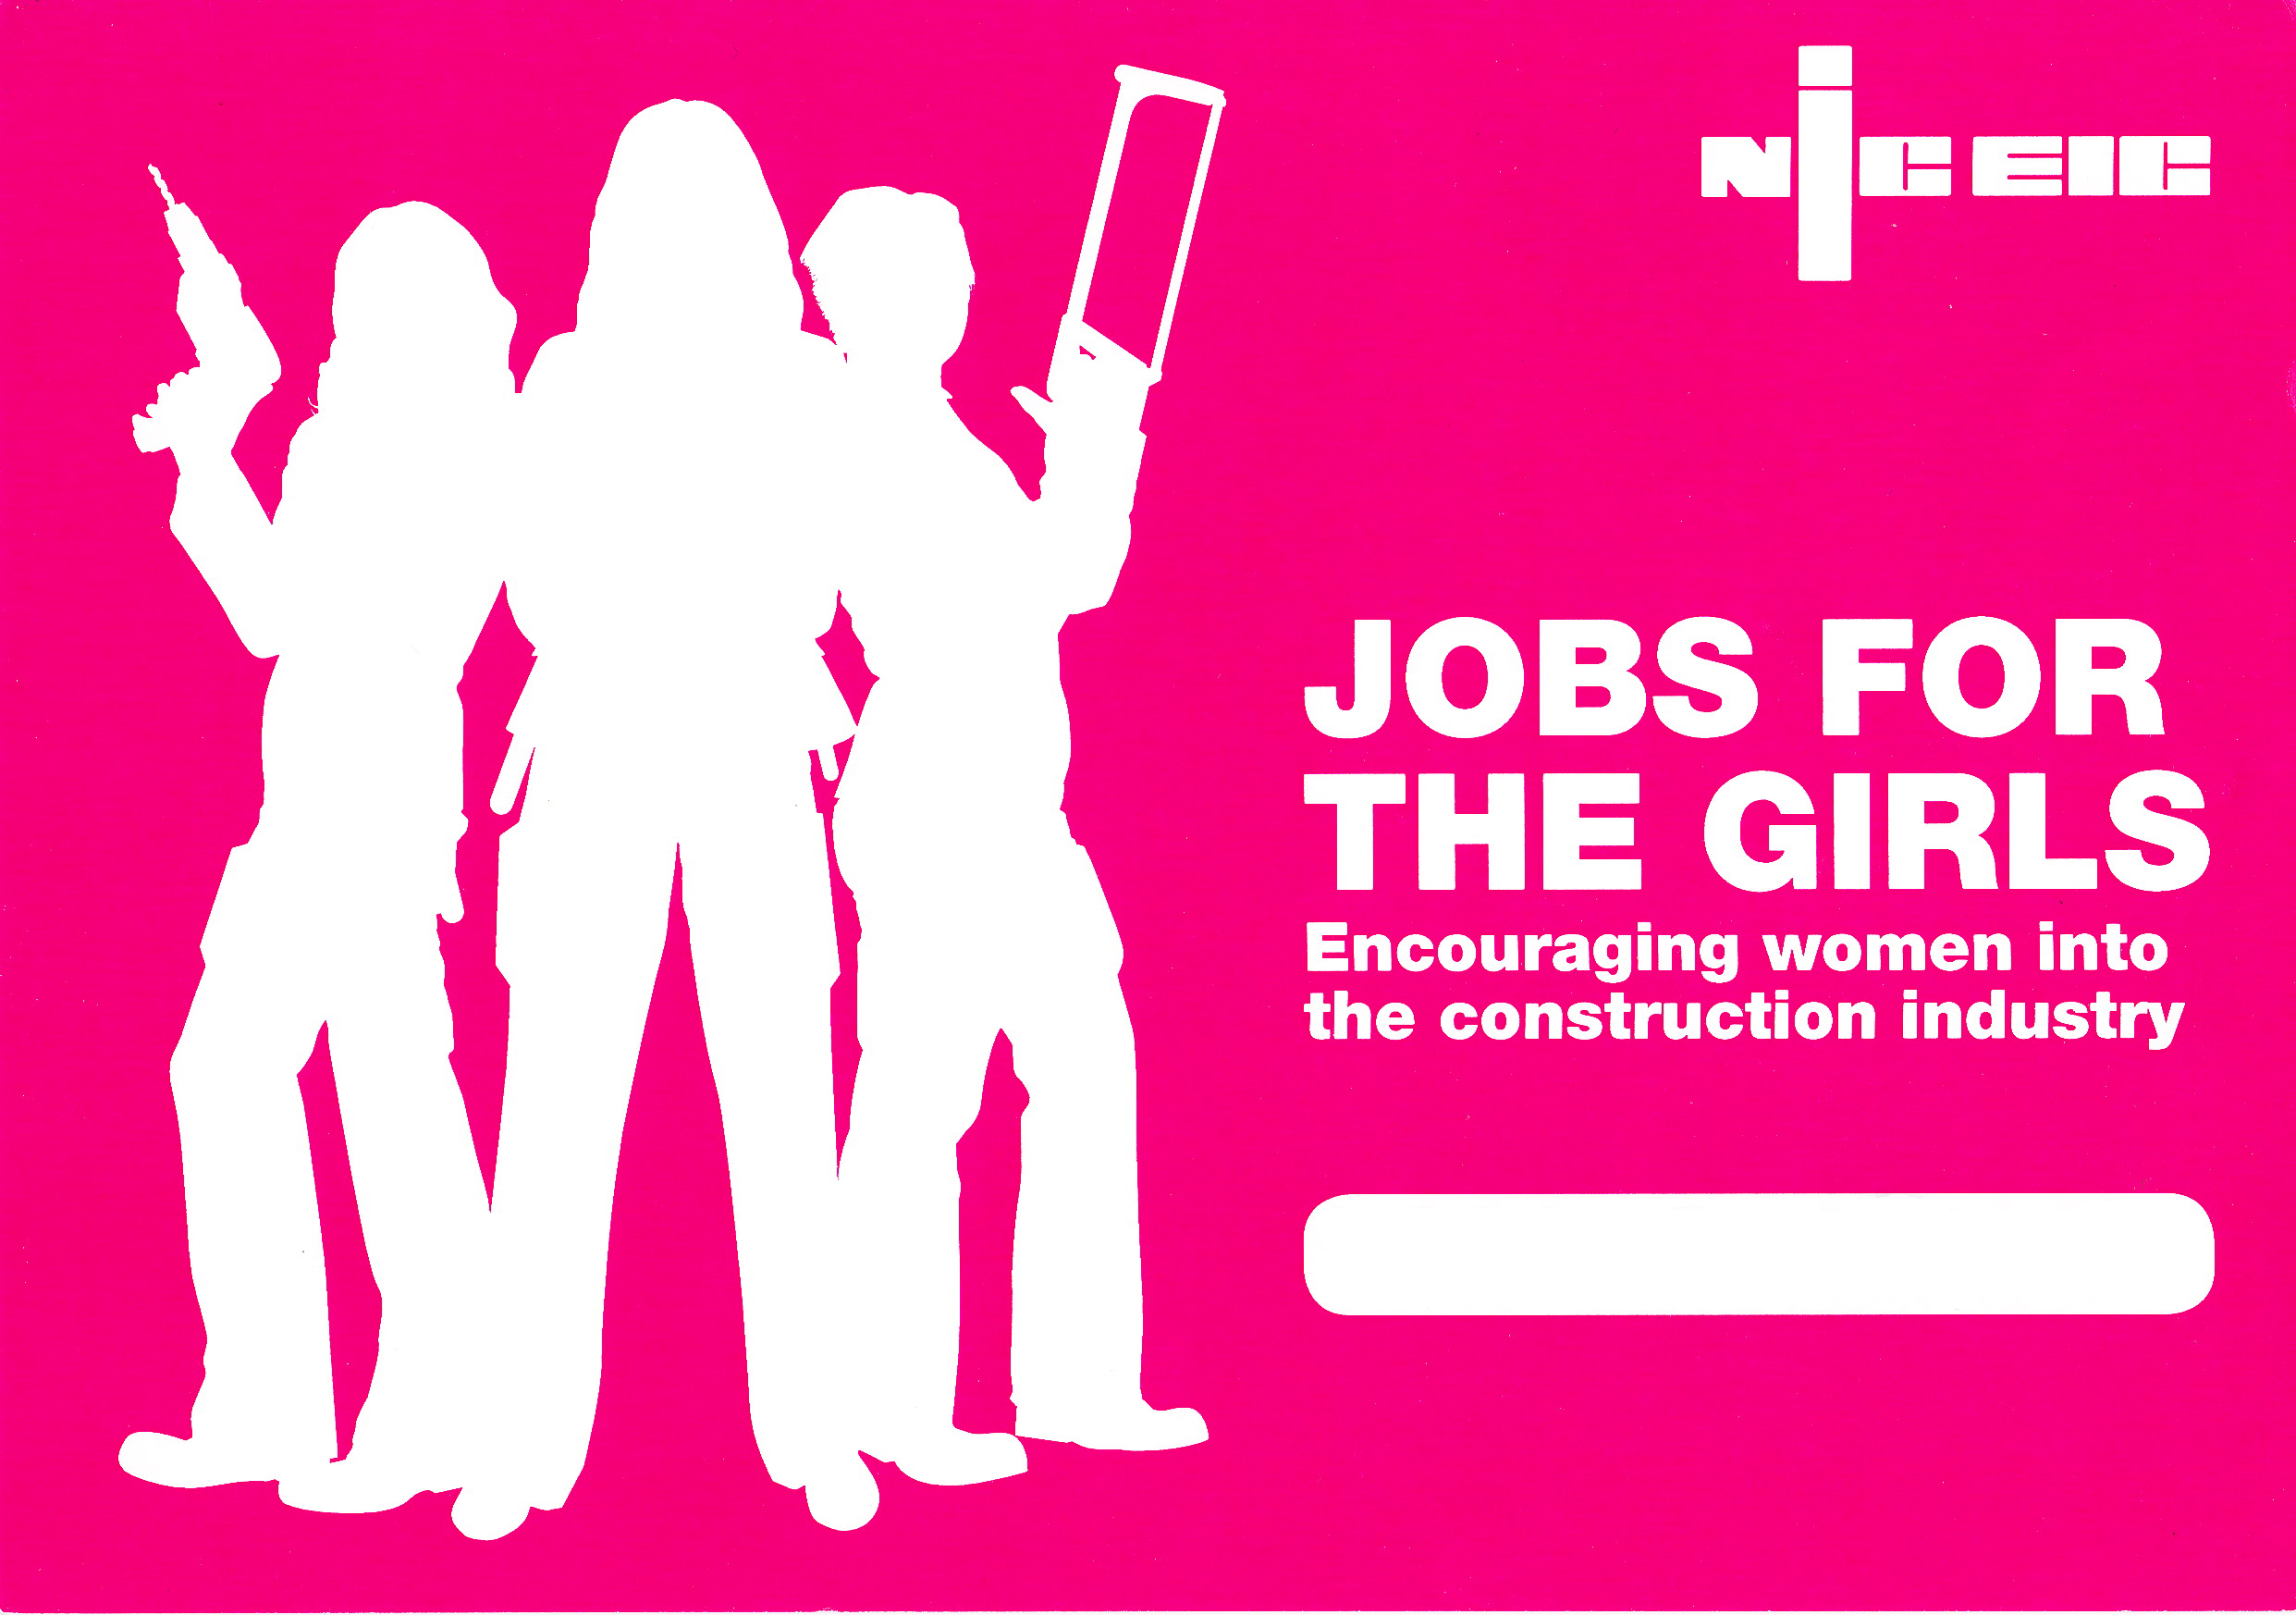 Jobs for the Girls | PEME - Asset Care Partners